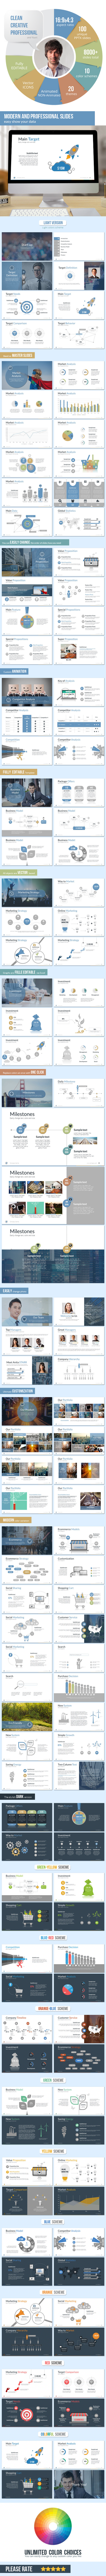 GraphicRiver Pitch Deck Start PowerPoint Presentation Template 10299061